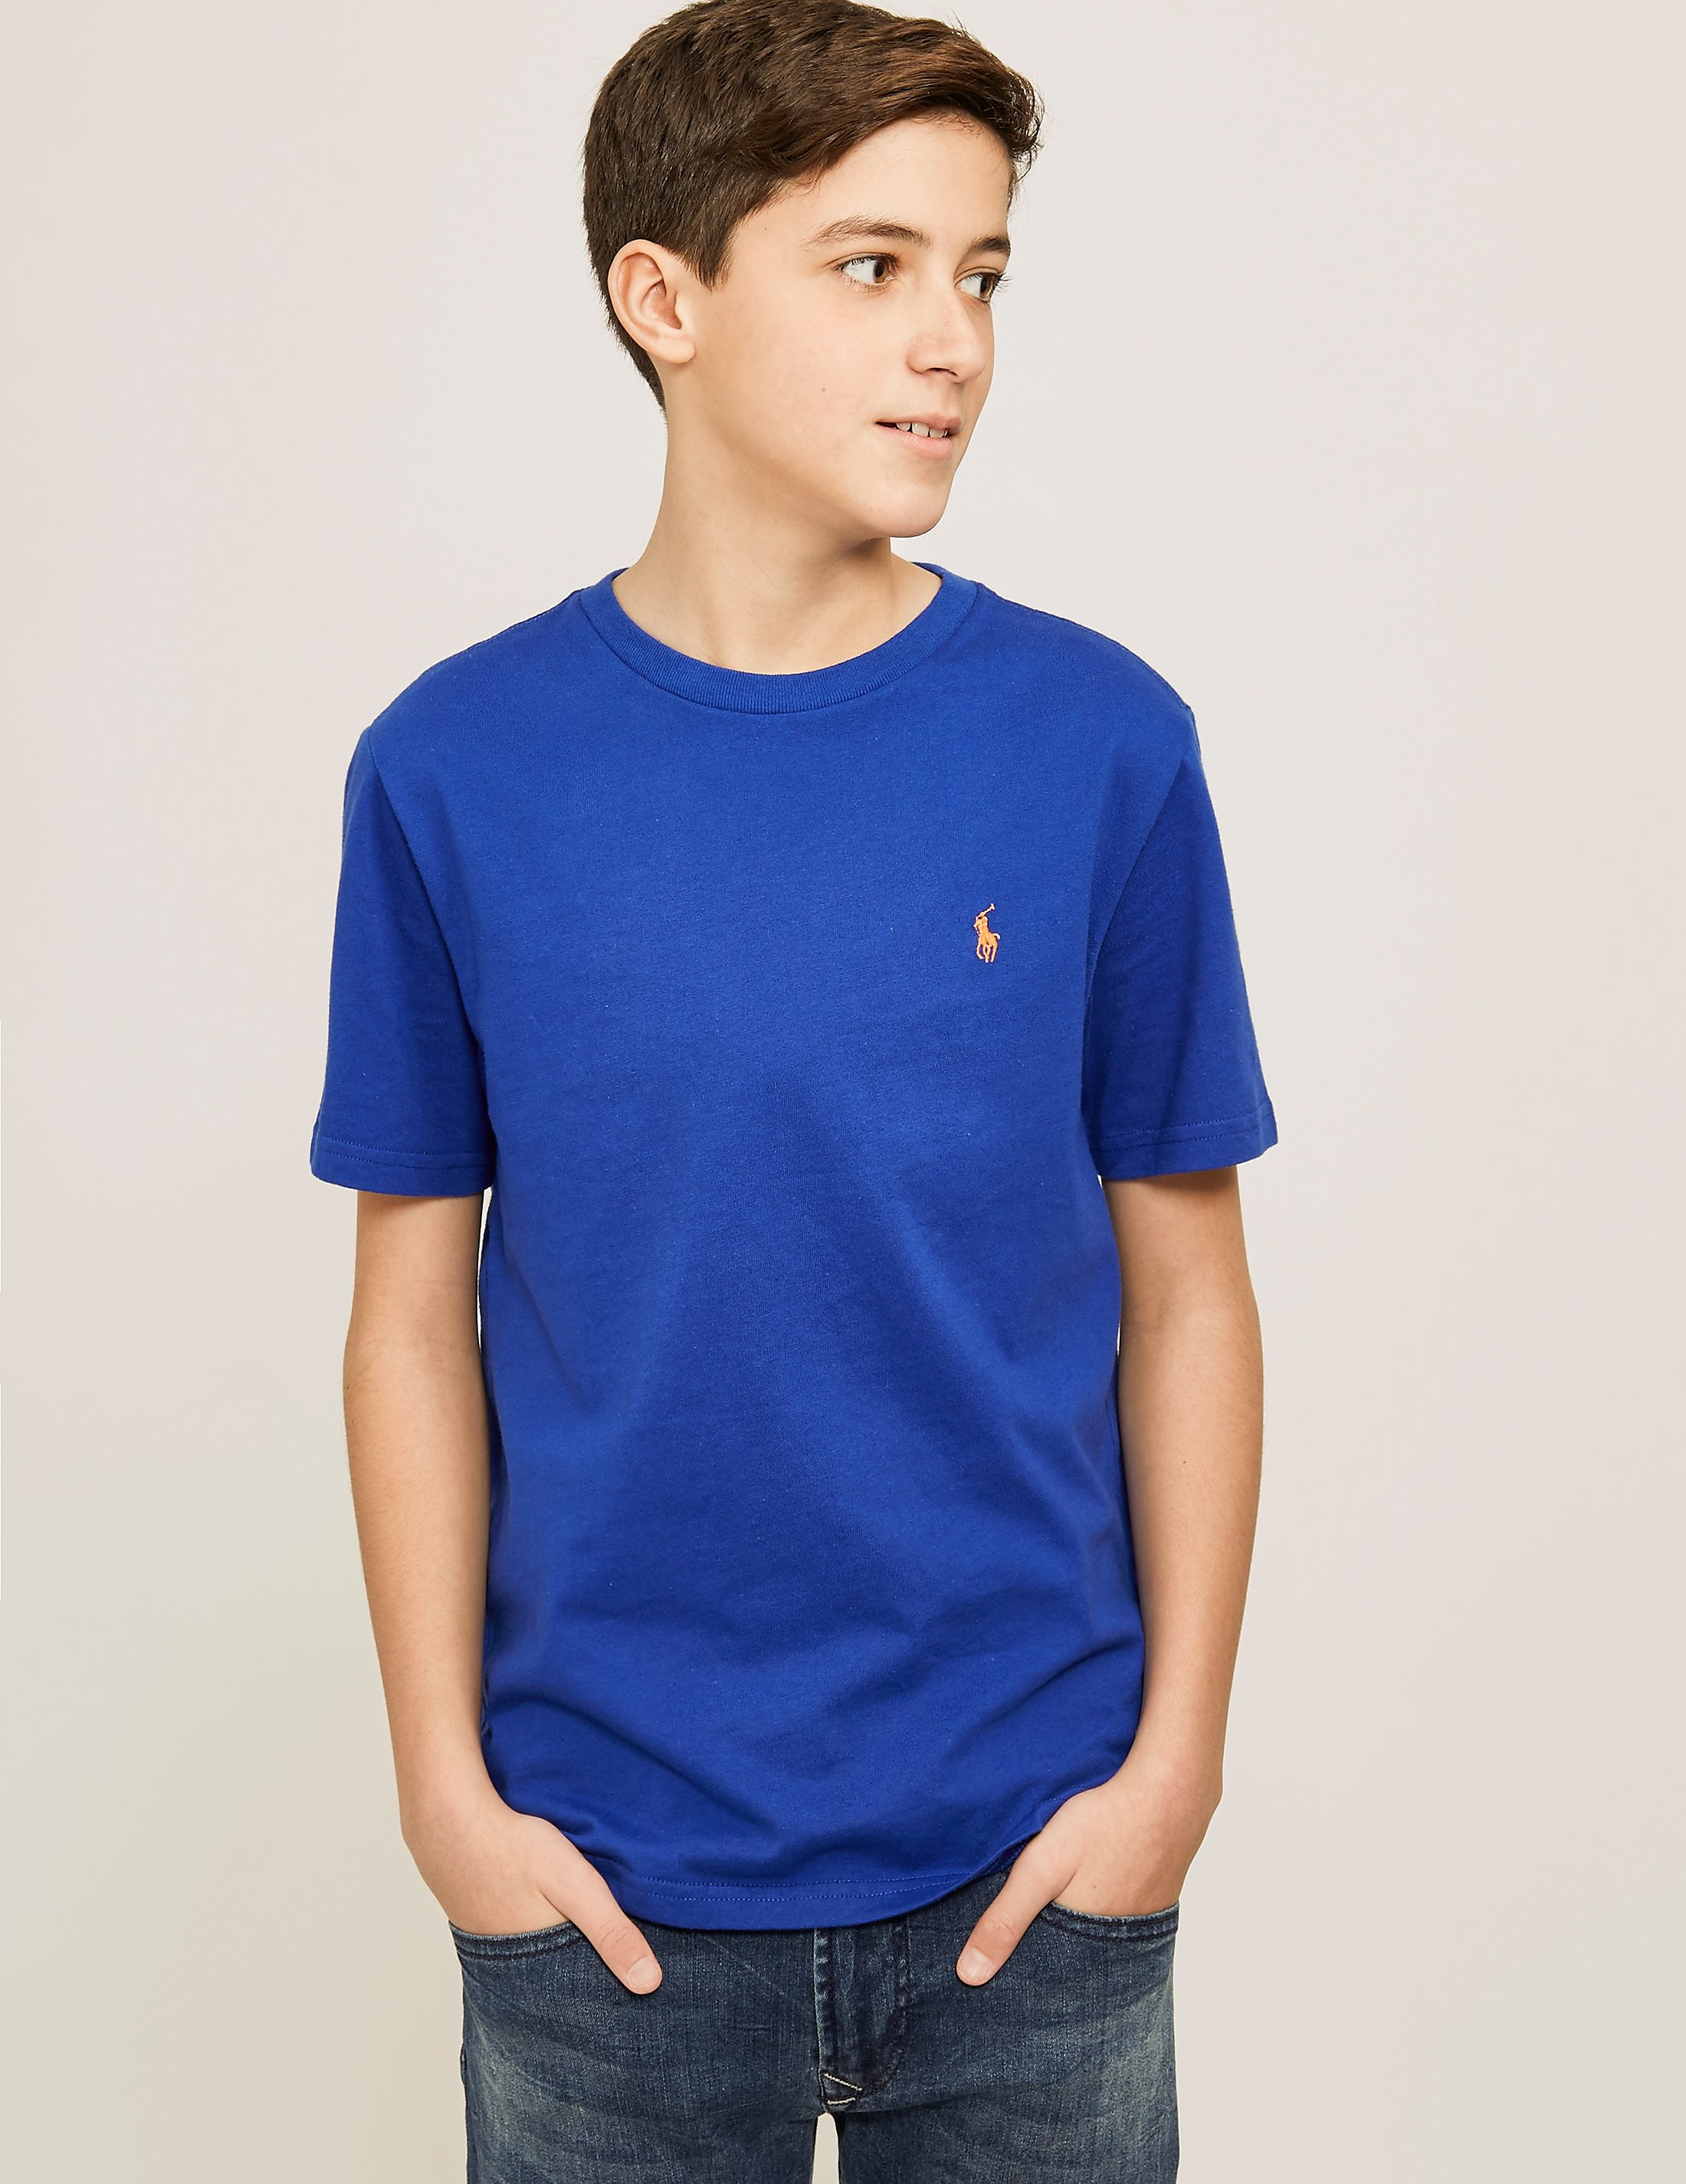 Polo Ralph Lauren Crew T-Shirt